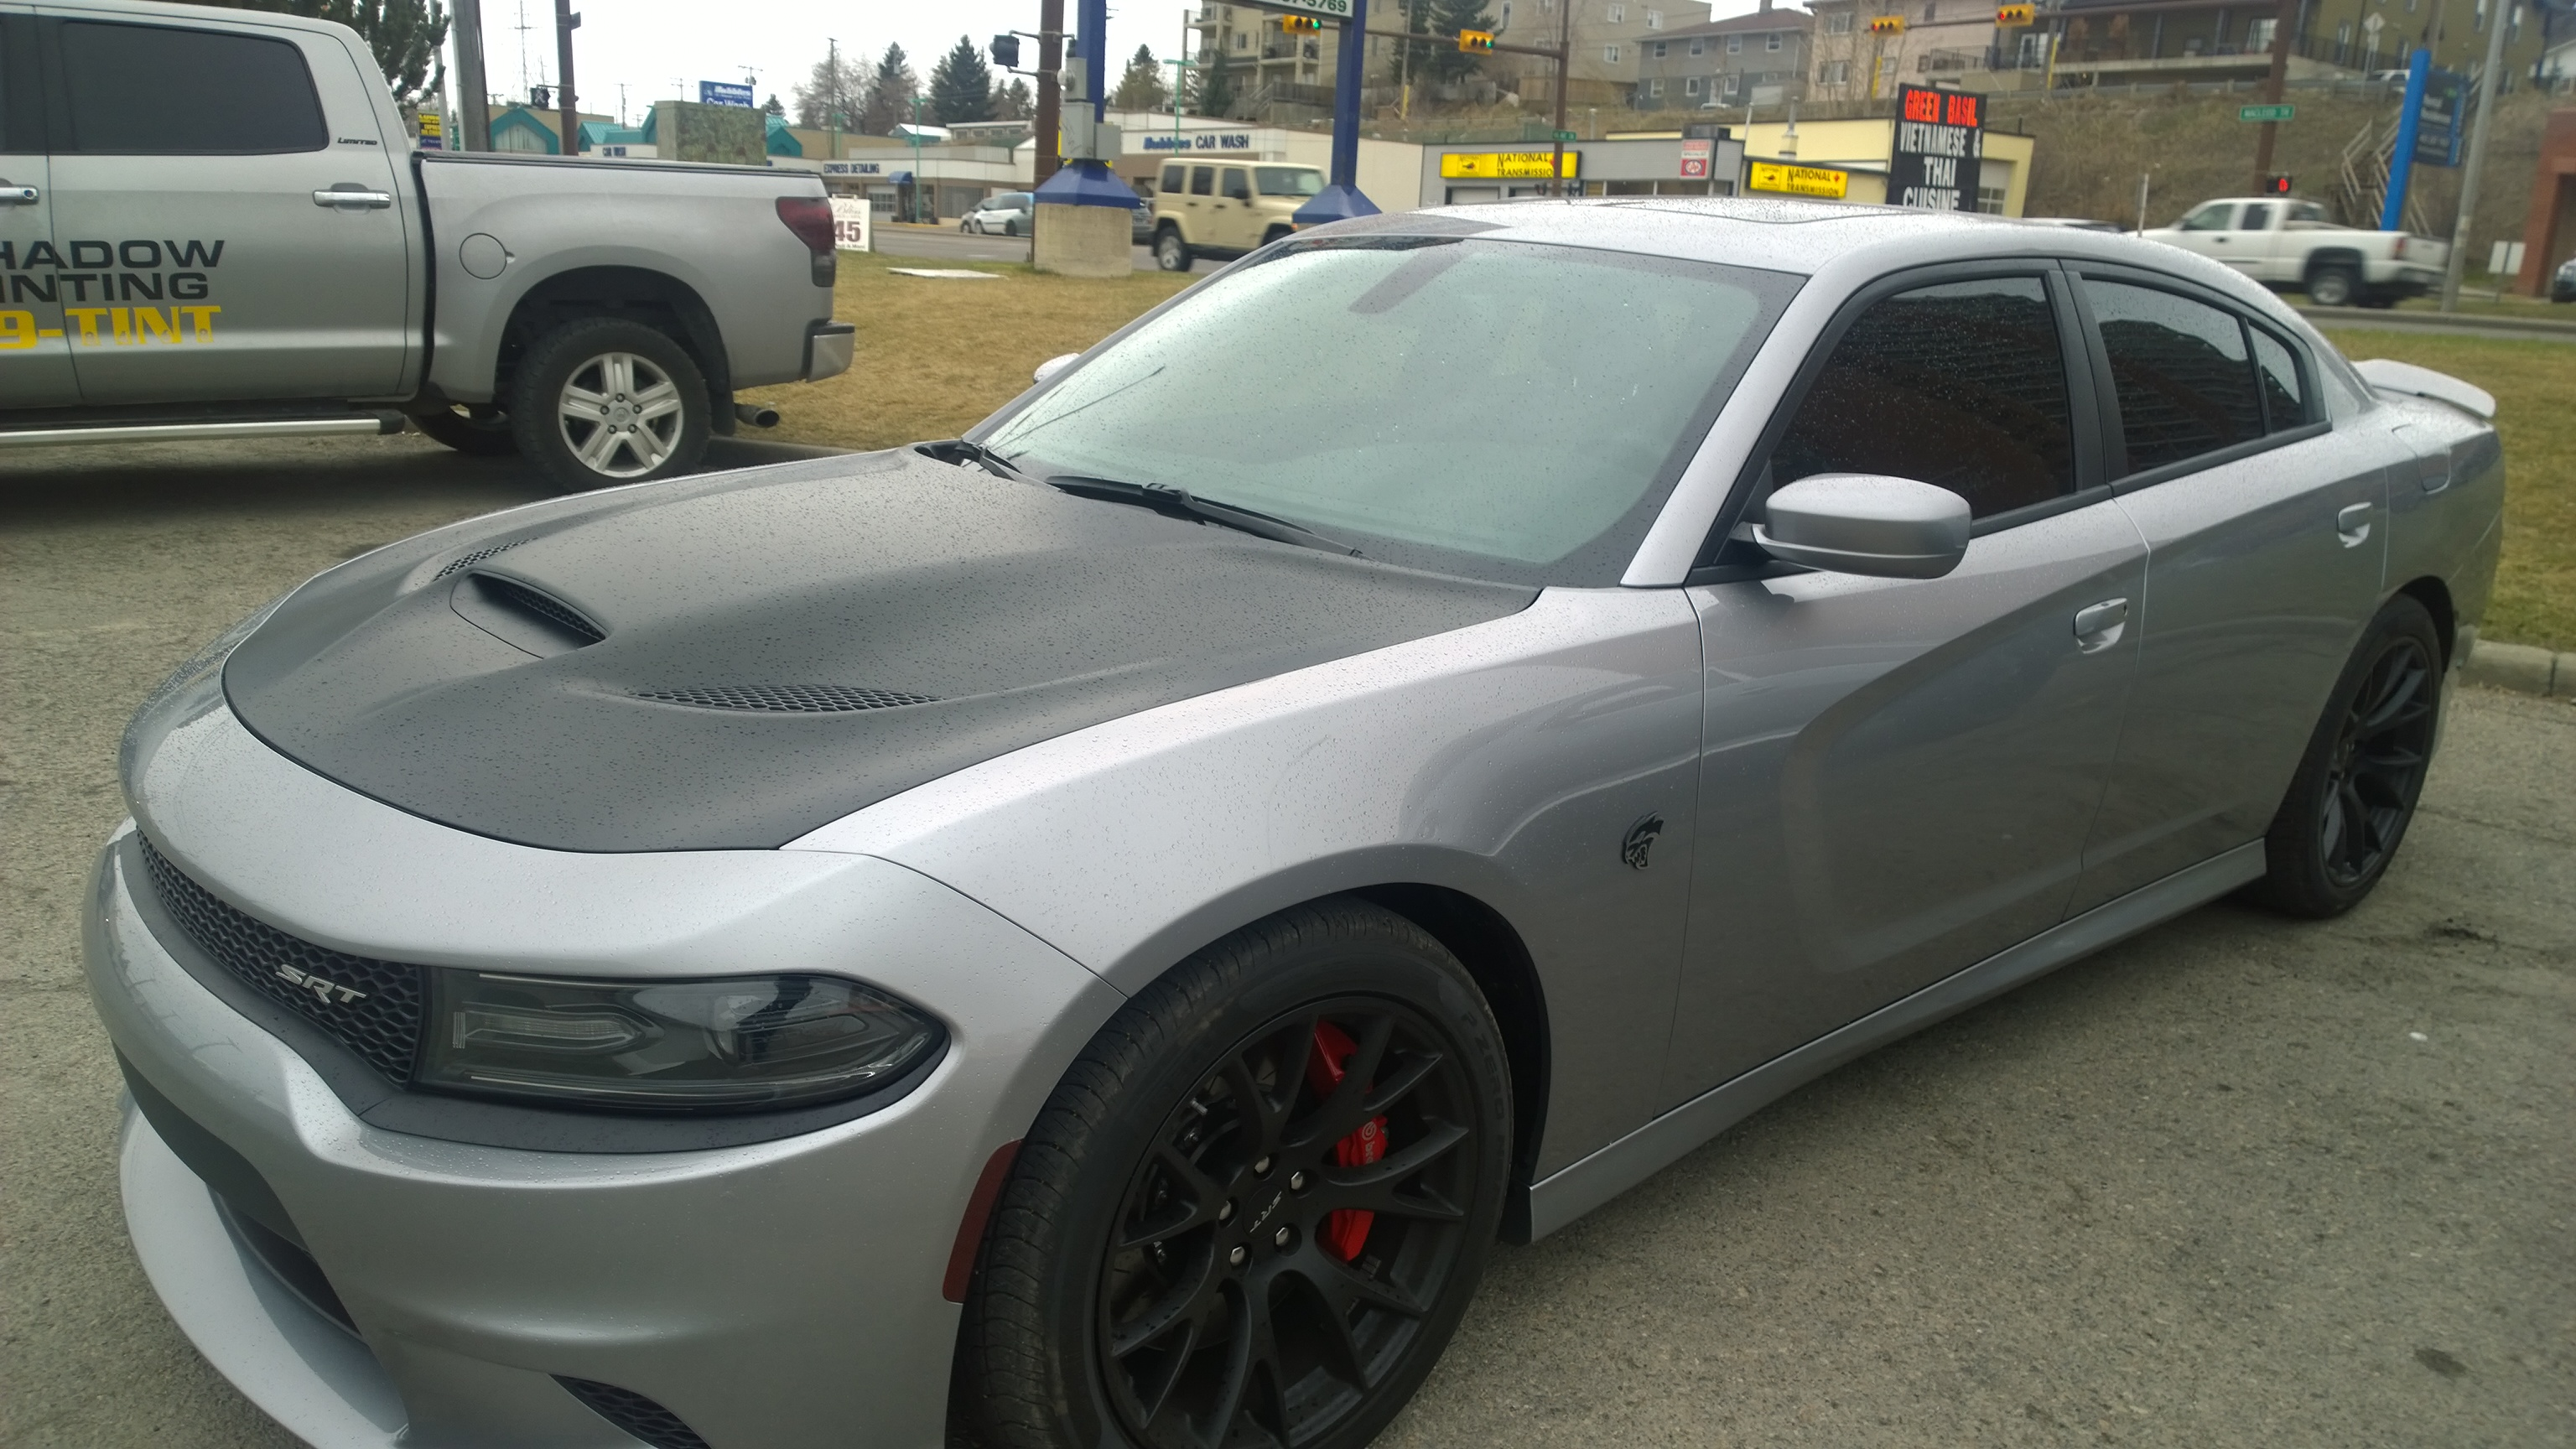 Hood Wrap Xpel Window Tint And Debadged Charger Srt